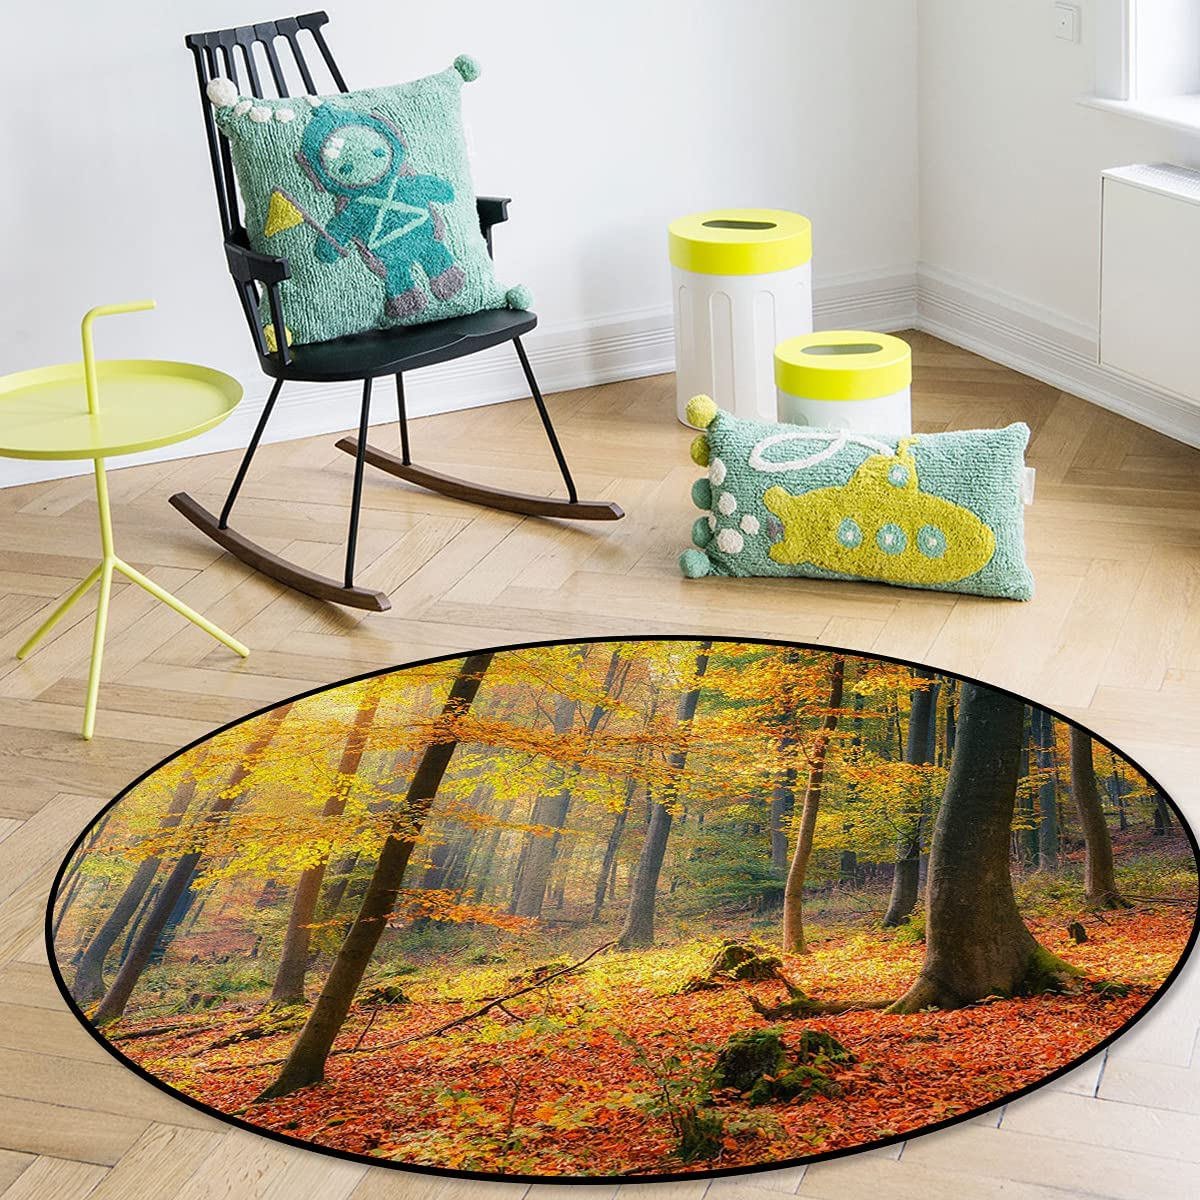 Savannan Max 56% OFF Round Area Rug Max 53% OFF Forest Nature Autumn Maple Tree Leaves